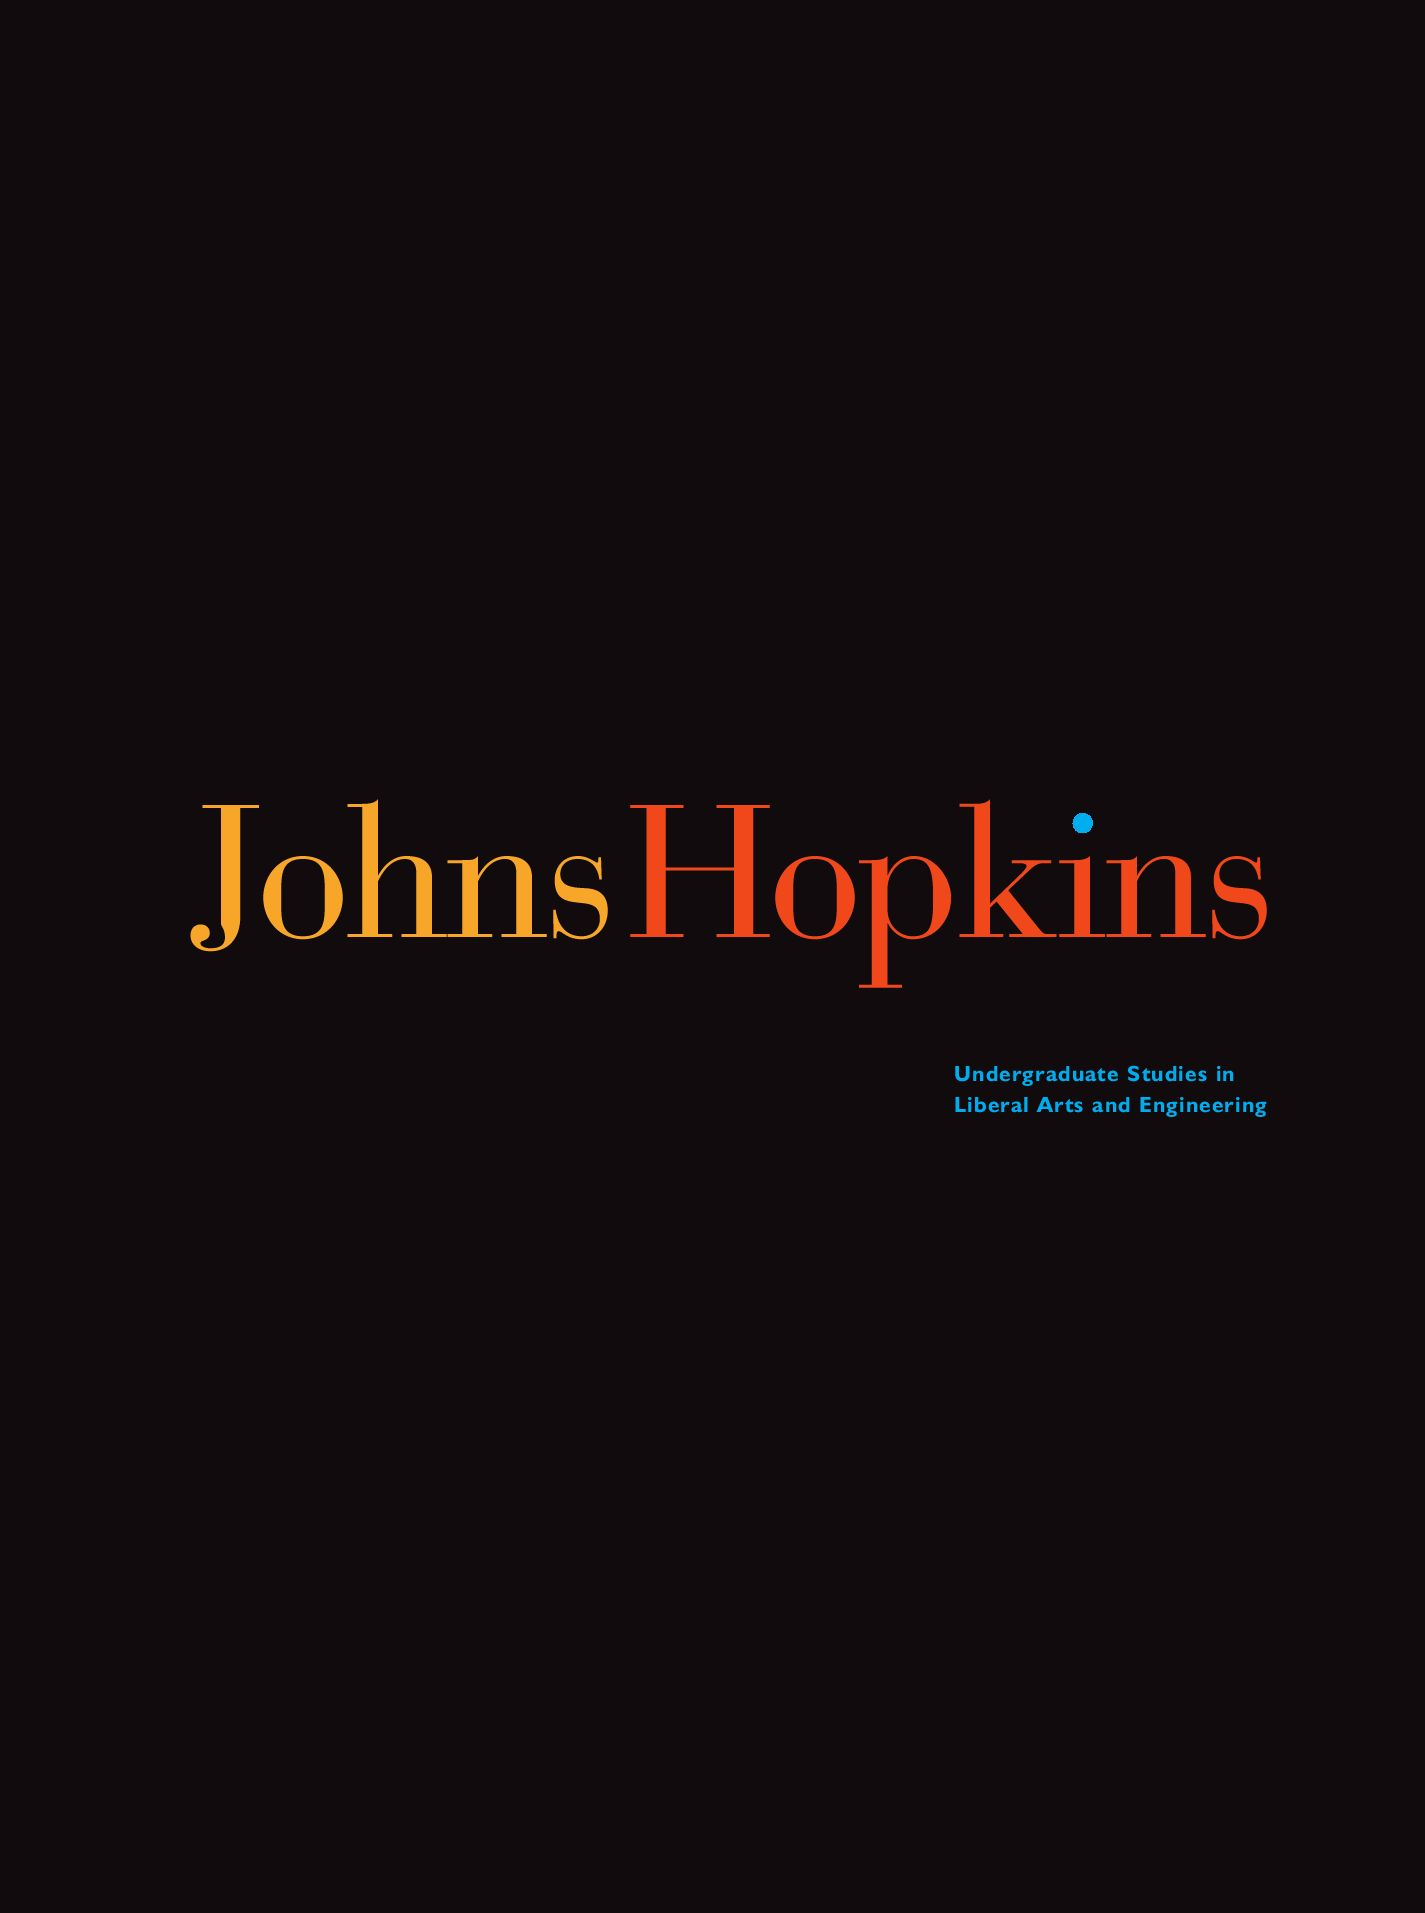 Am I likely to be admitted to Johns Hopkins University early decision? University of Chicago early action?